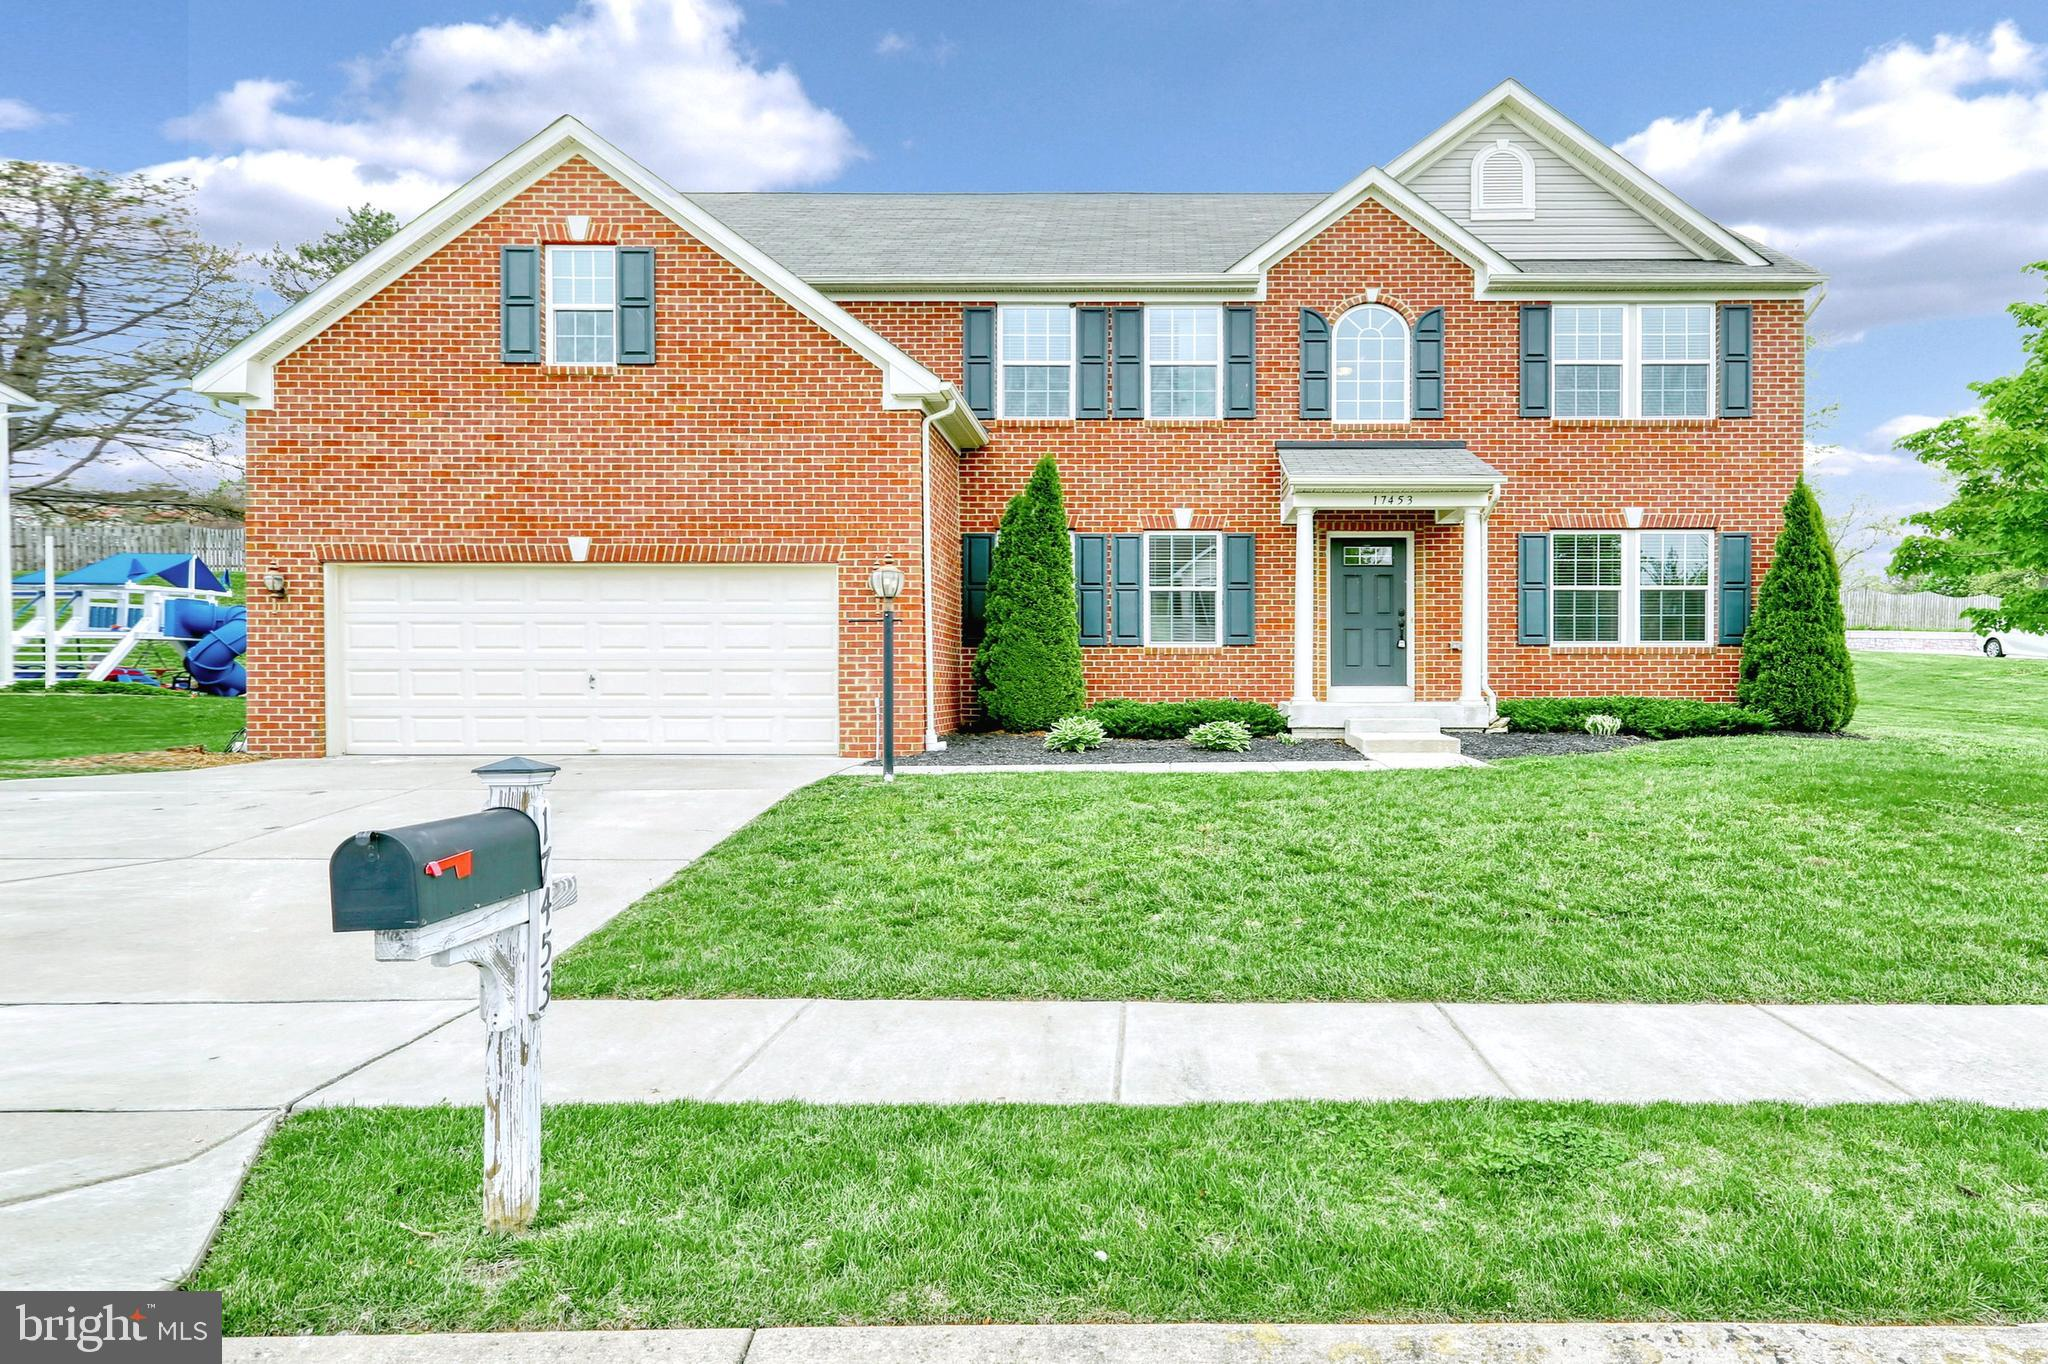 17453 REDDALE DRIVE, NEW FREEDOM, PA 17349